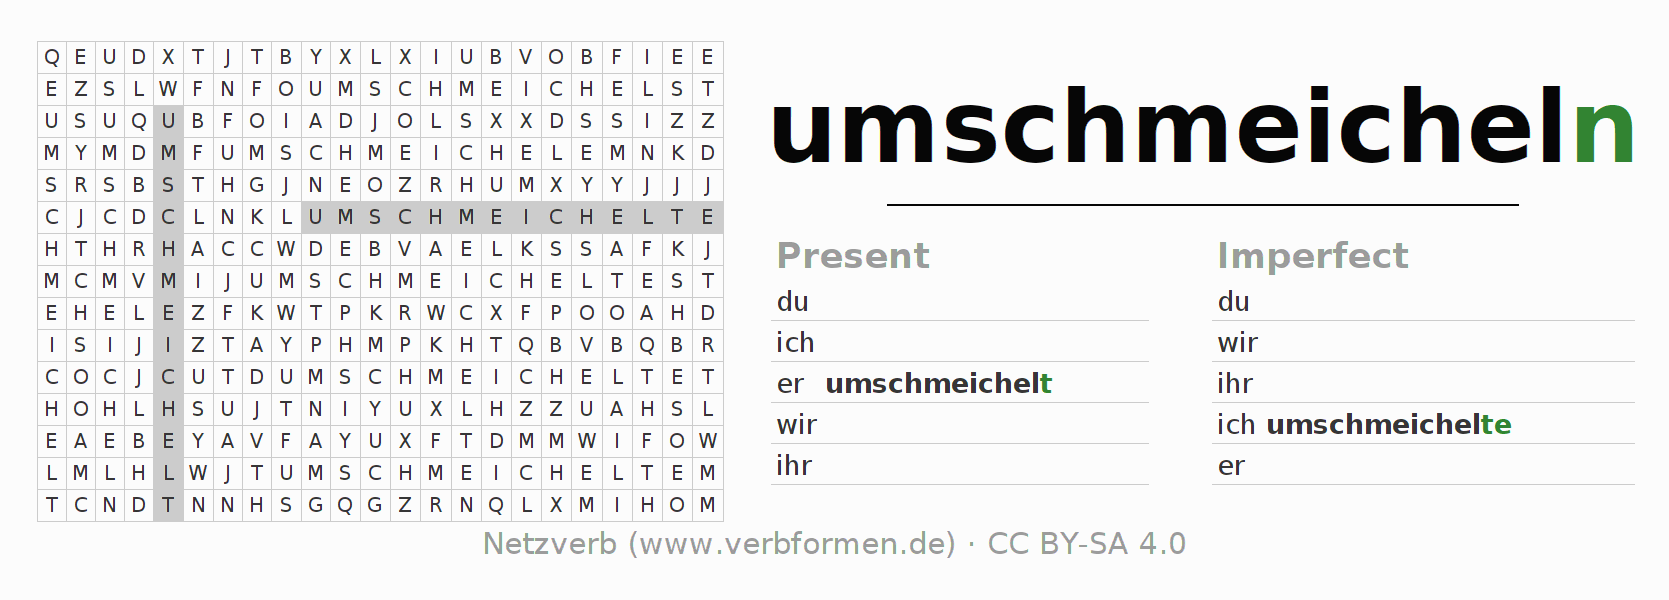 Word search puzzle for the conjugation of the verb umschmeicheln